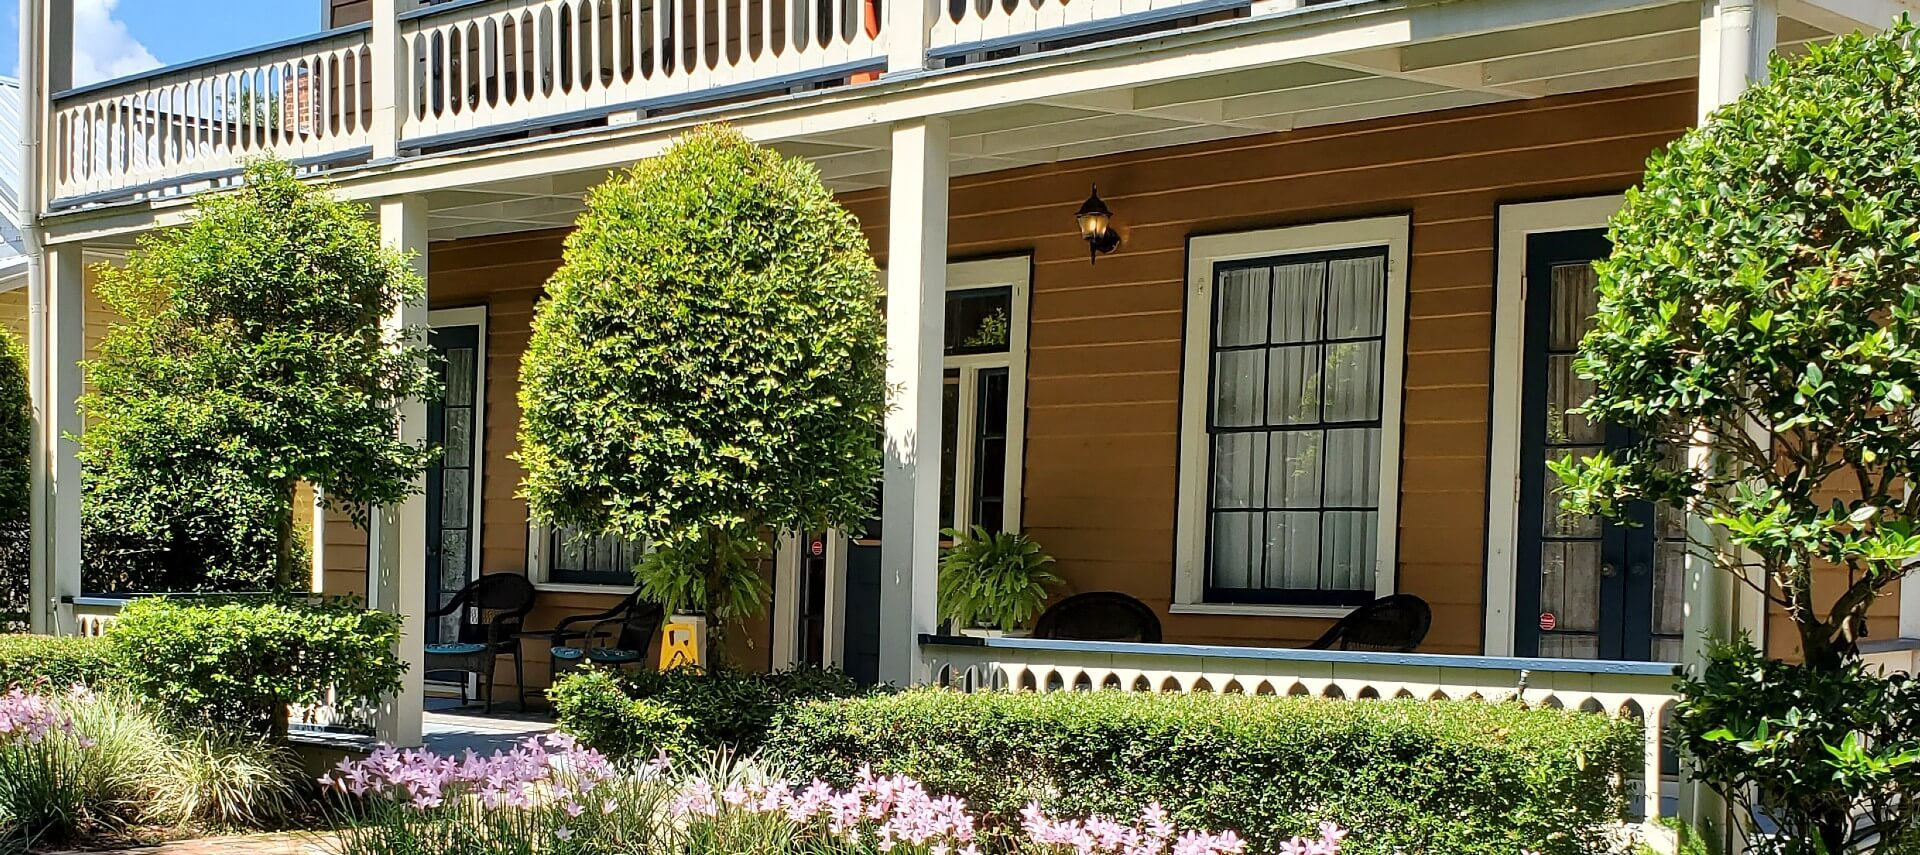 Front facade of a two story home with large black and white windows, porch with wicker furniture and lush landscaping